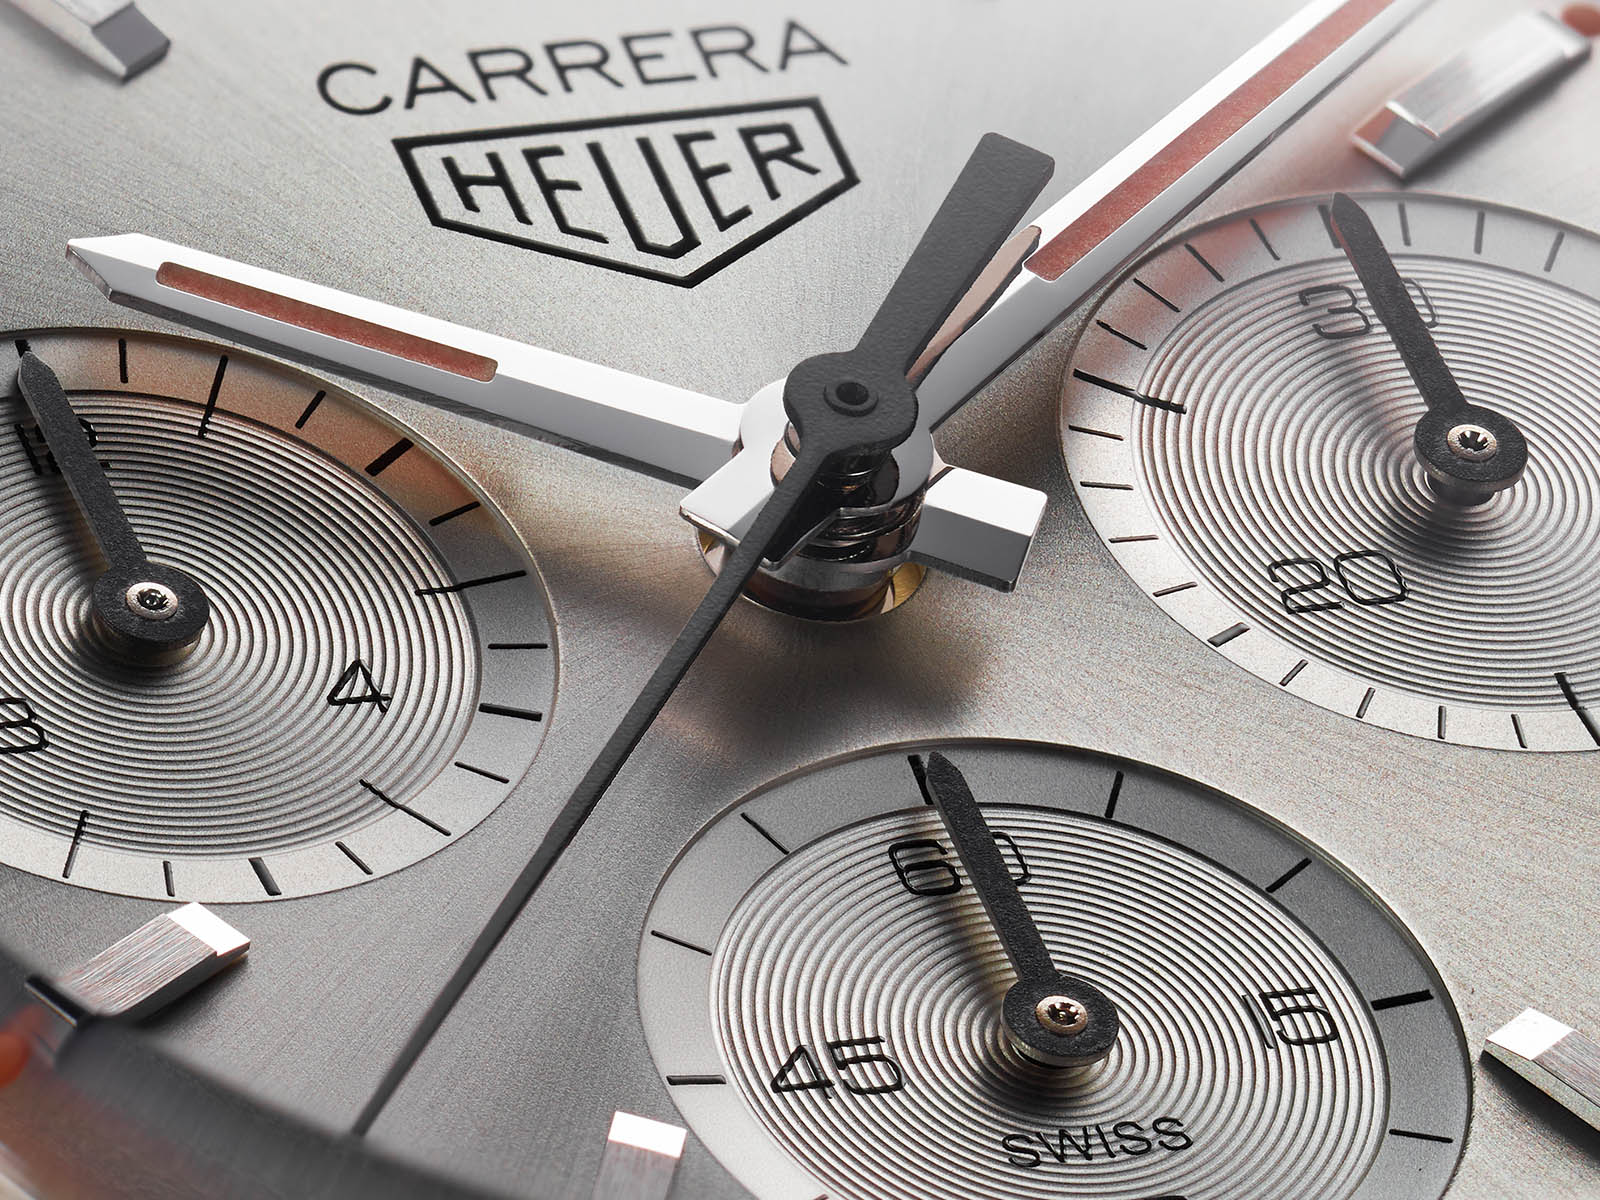 cbk221b-fc6479-tag-heuer-carrera-160-years-silver-limited-edition-4.jpg